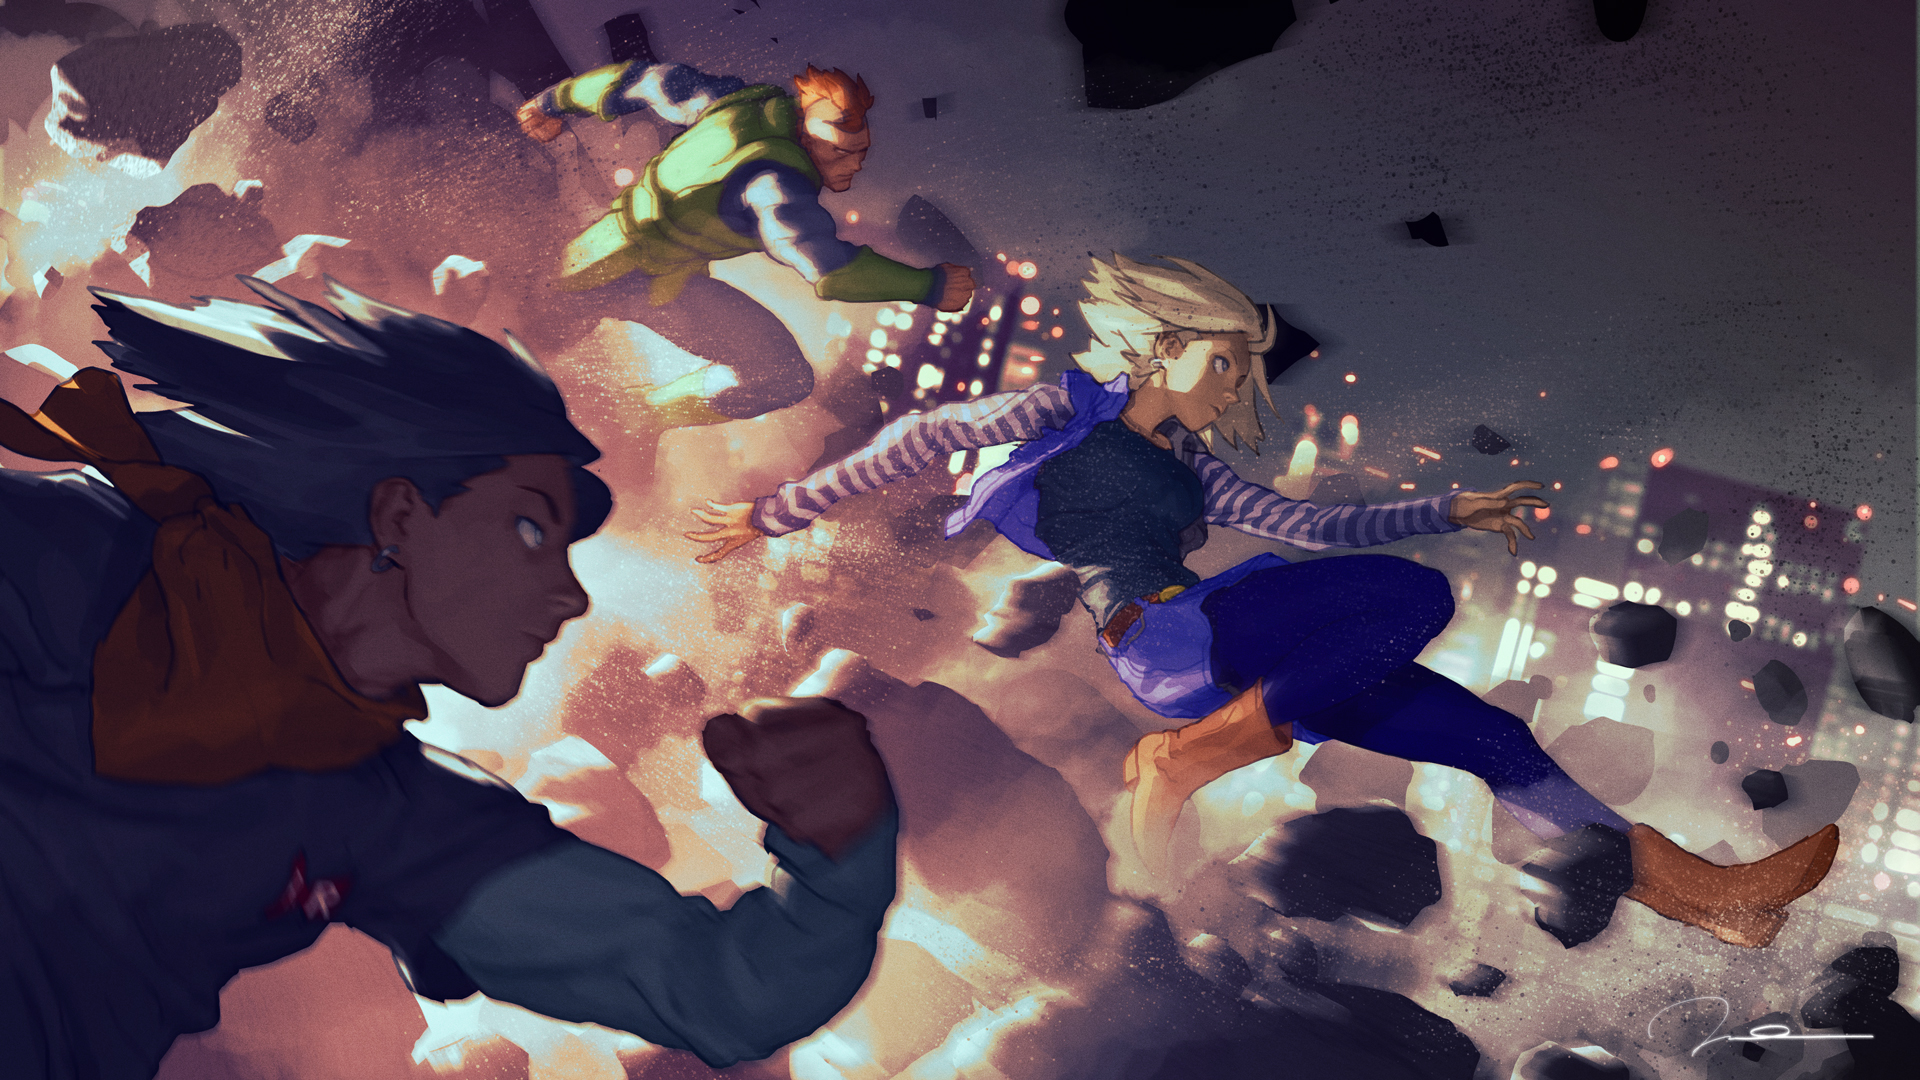 Dragon Ball Z Hd Wallpaper For Android: The Androids Invasion HD Wallpaper